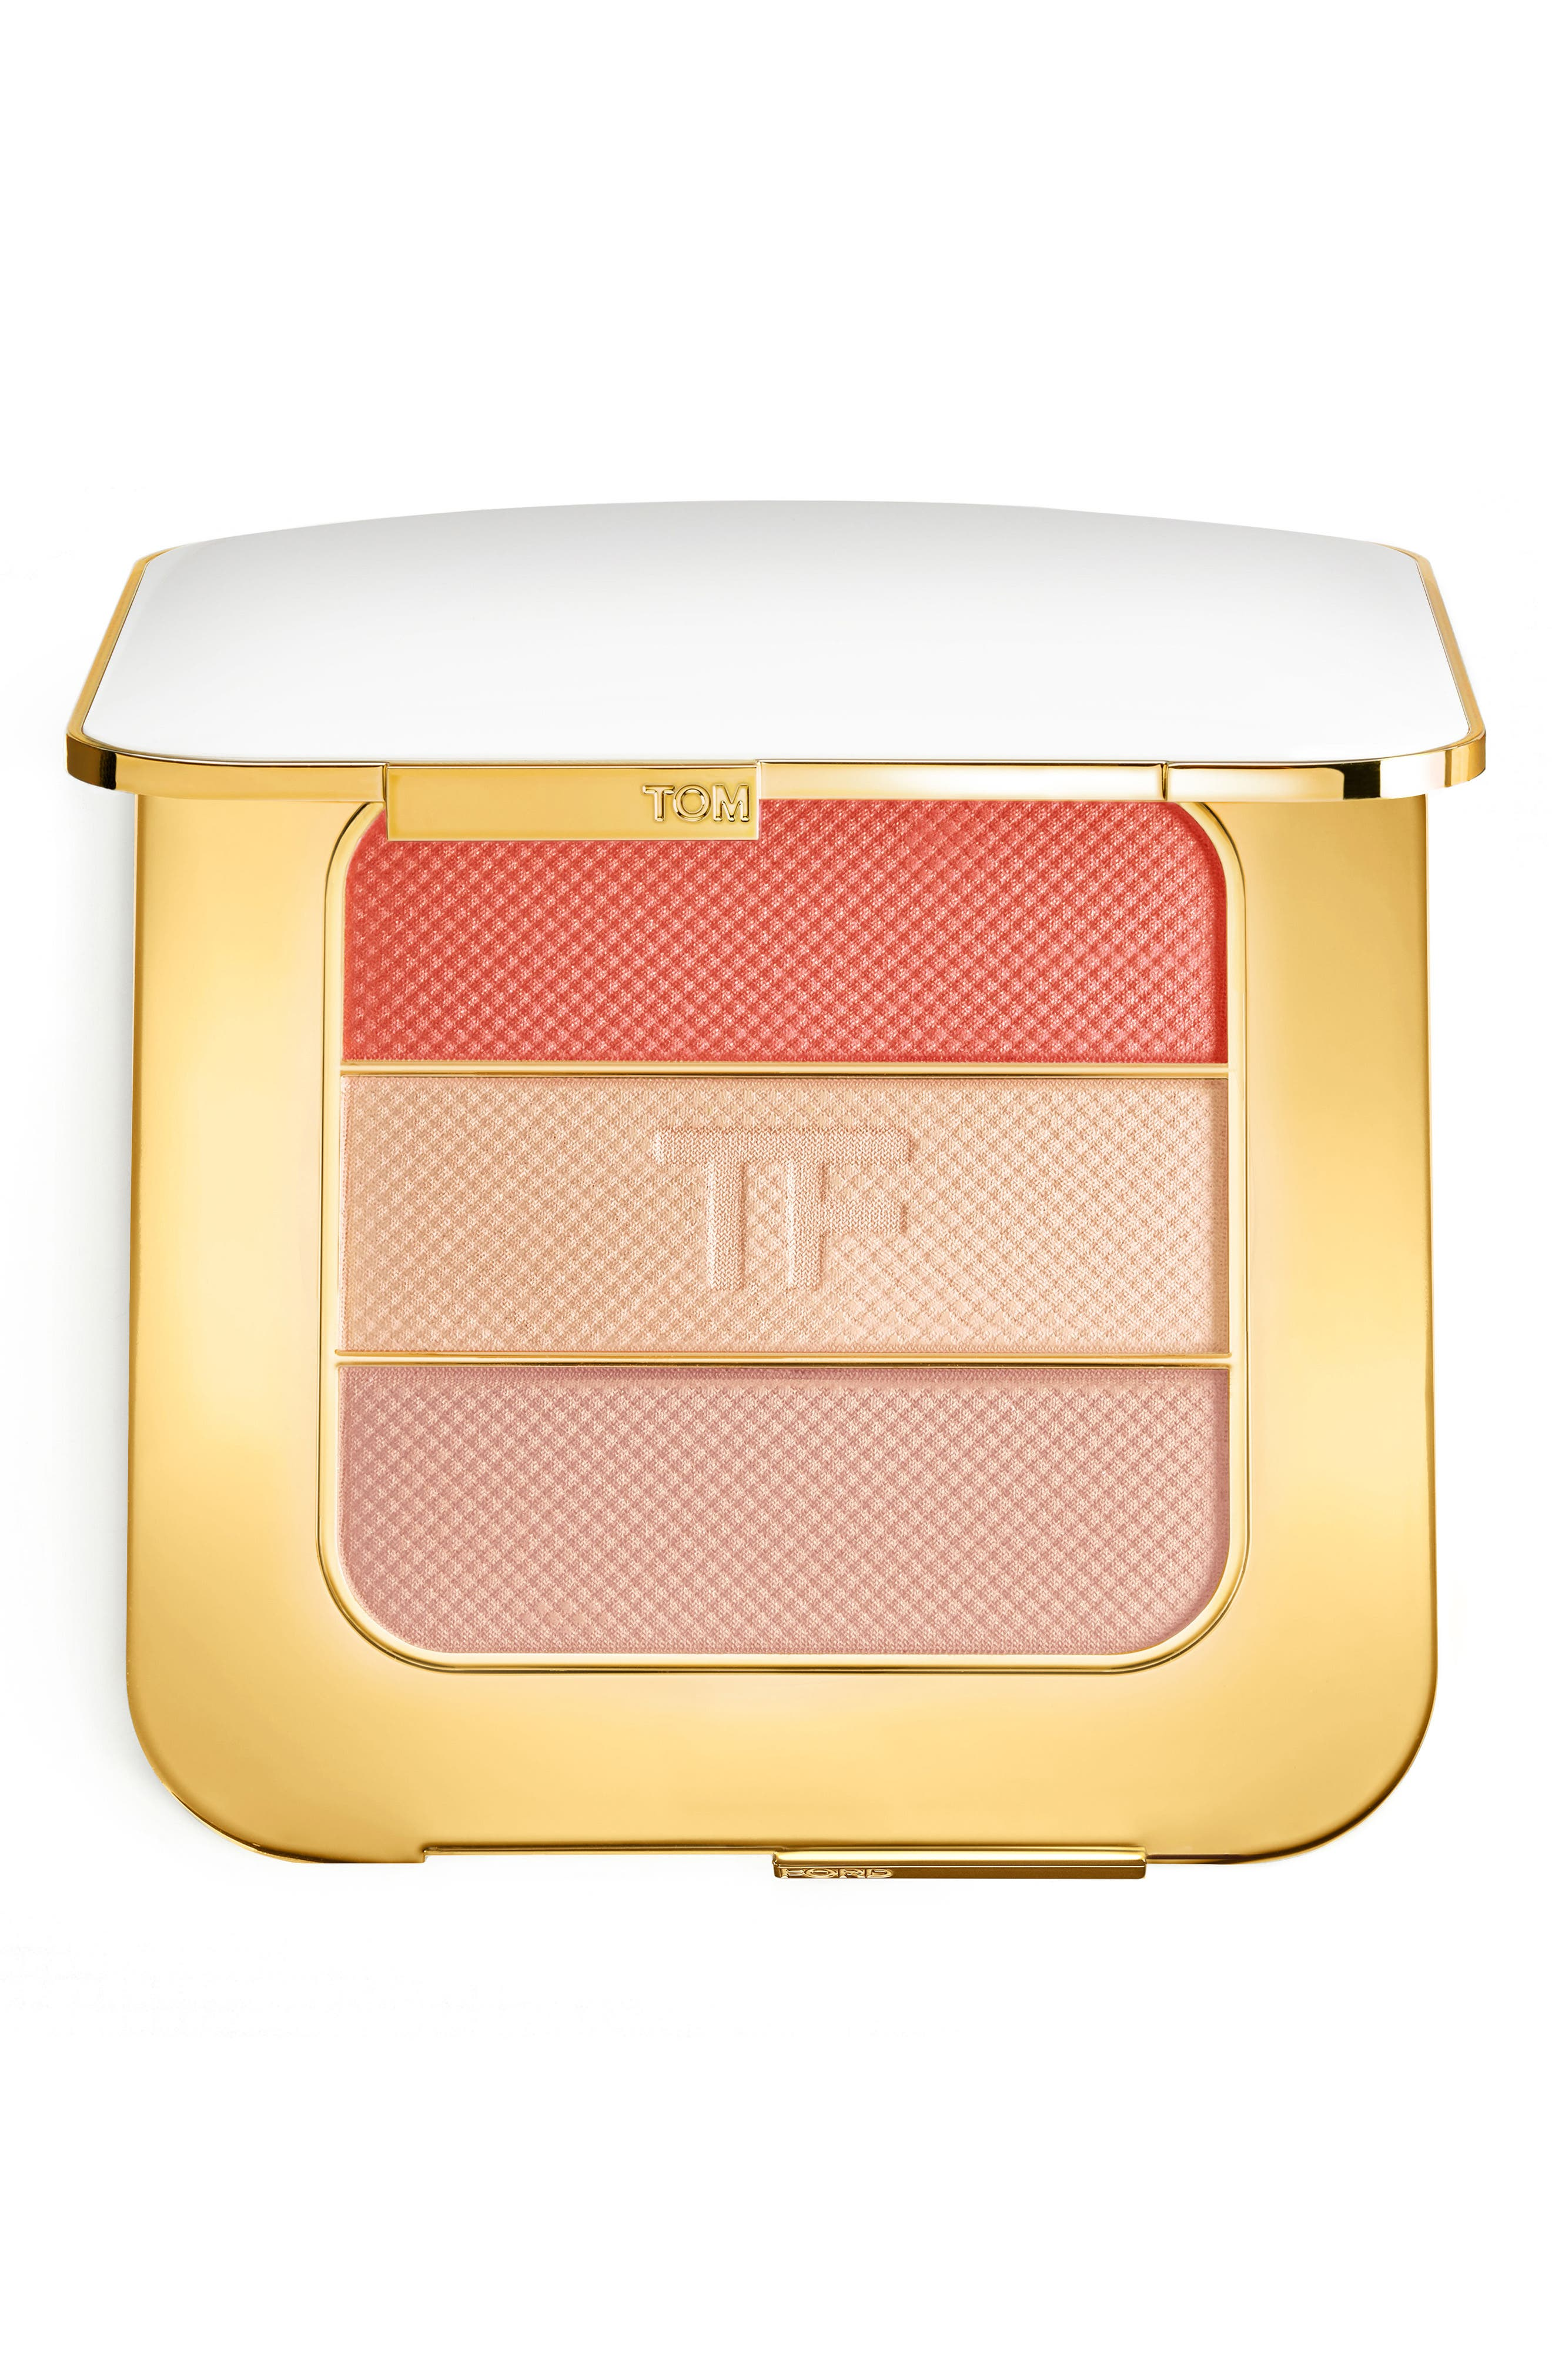 Soleil Contouring Compact,                             Main thumbnail 1, color,                             Nude Glow